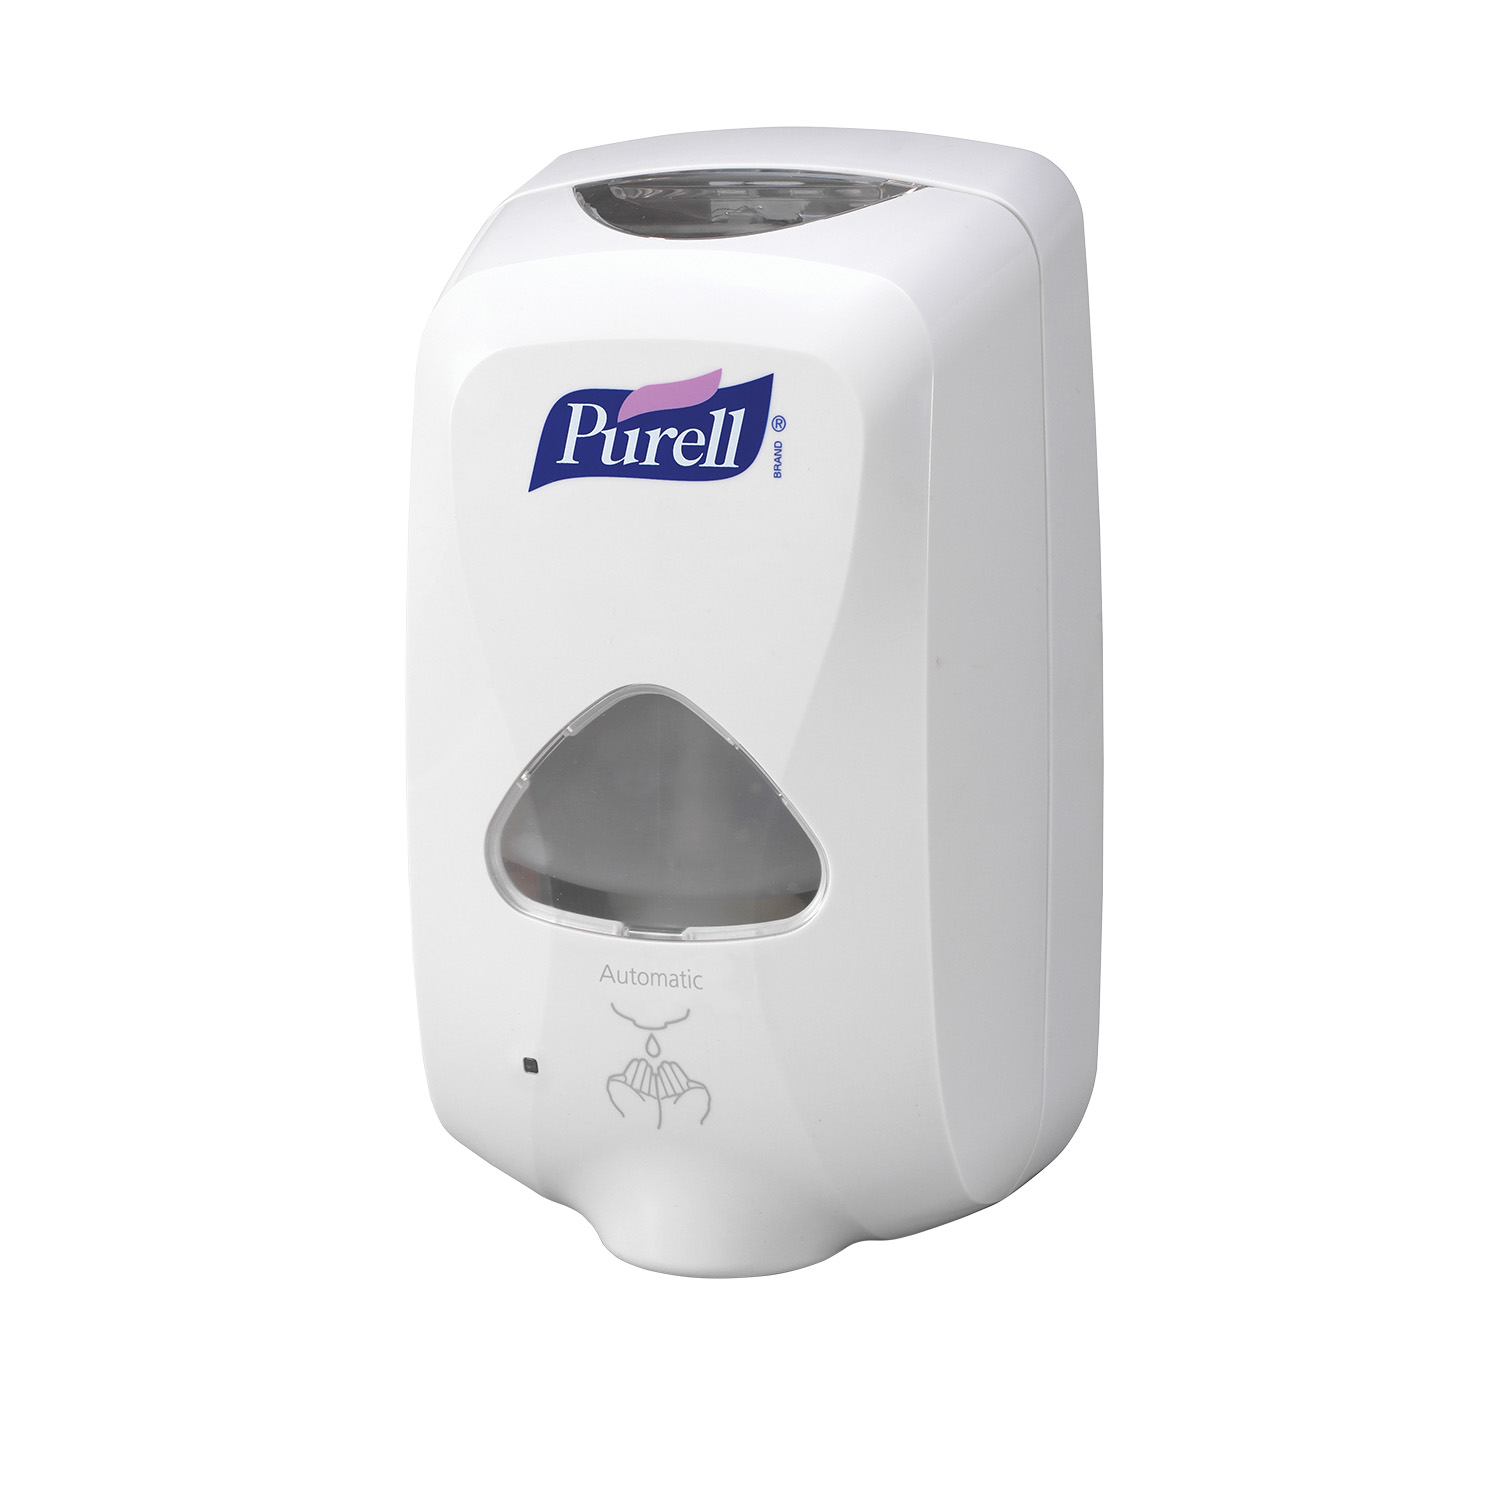 Purell Tfx Touch Free Automatic Hand Sanitiser Dispenser White